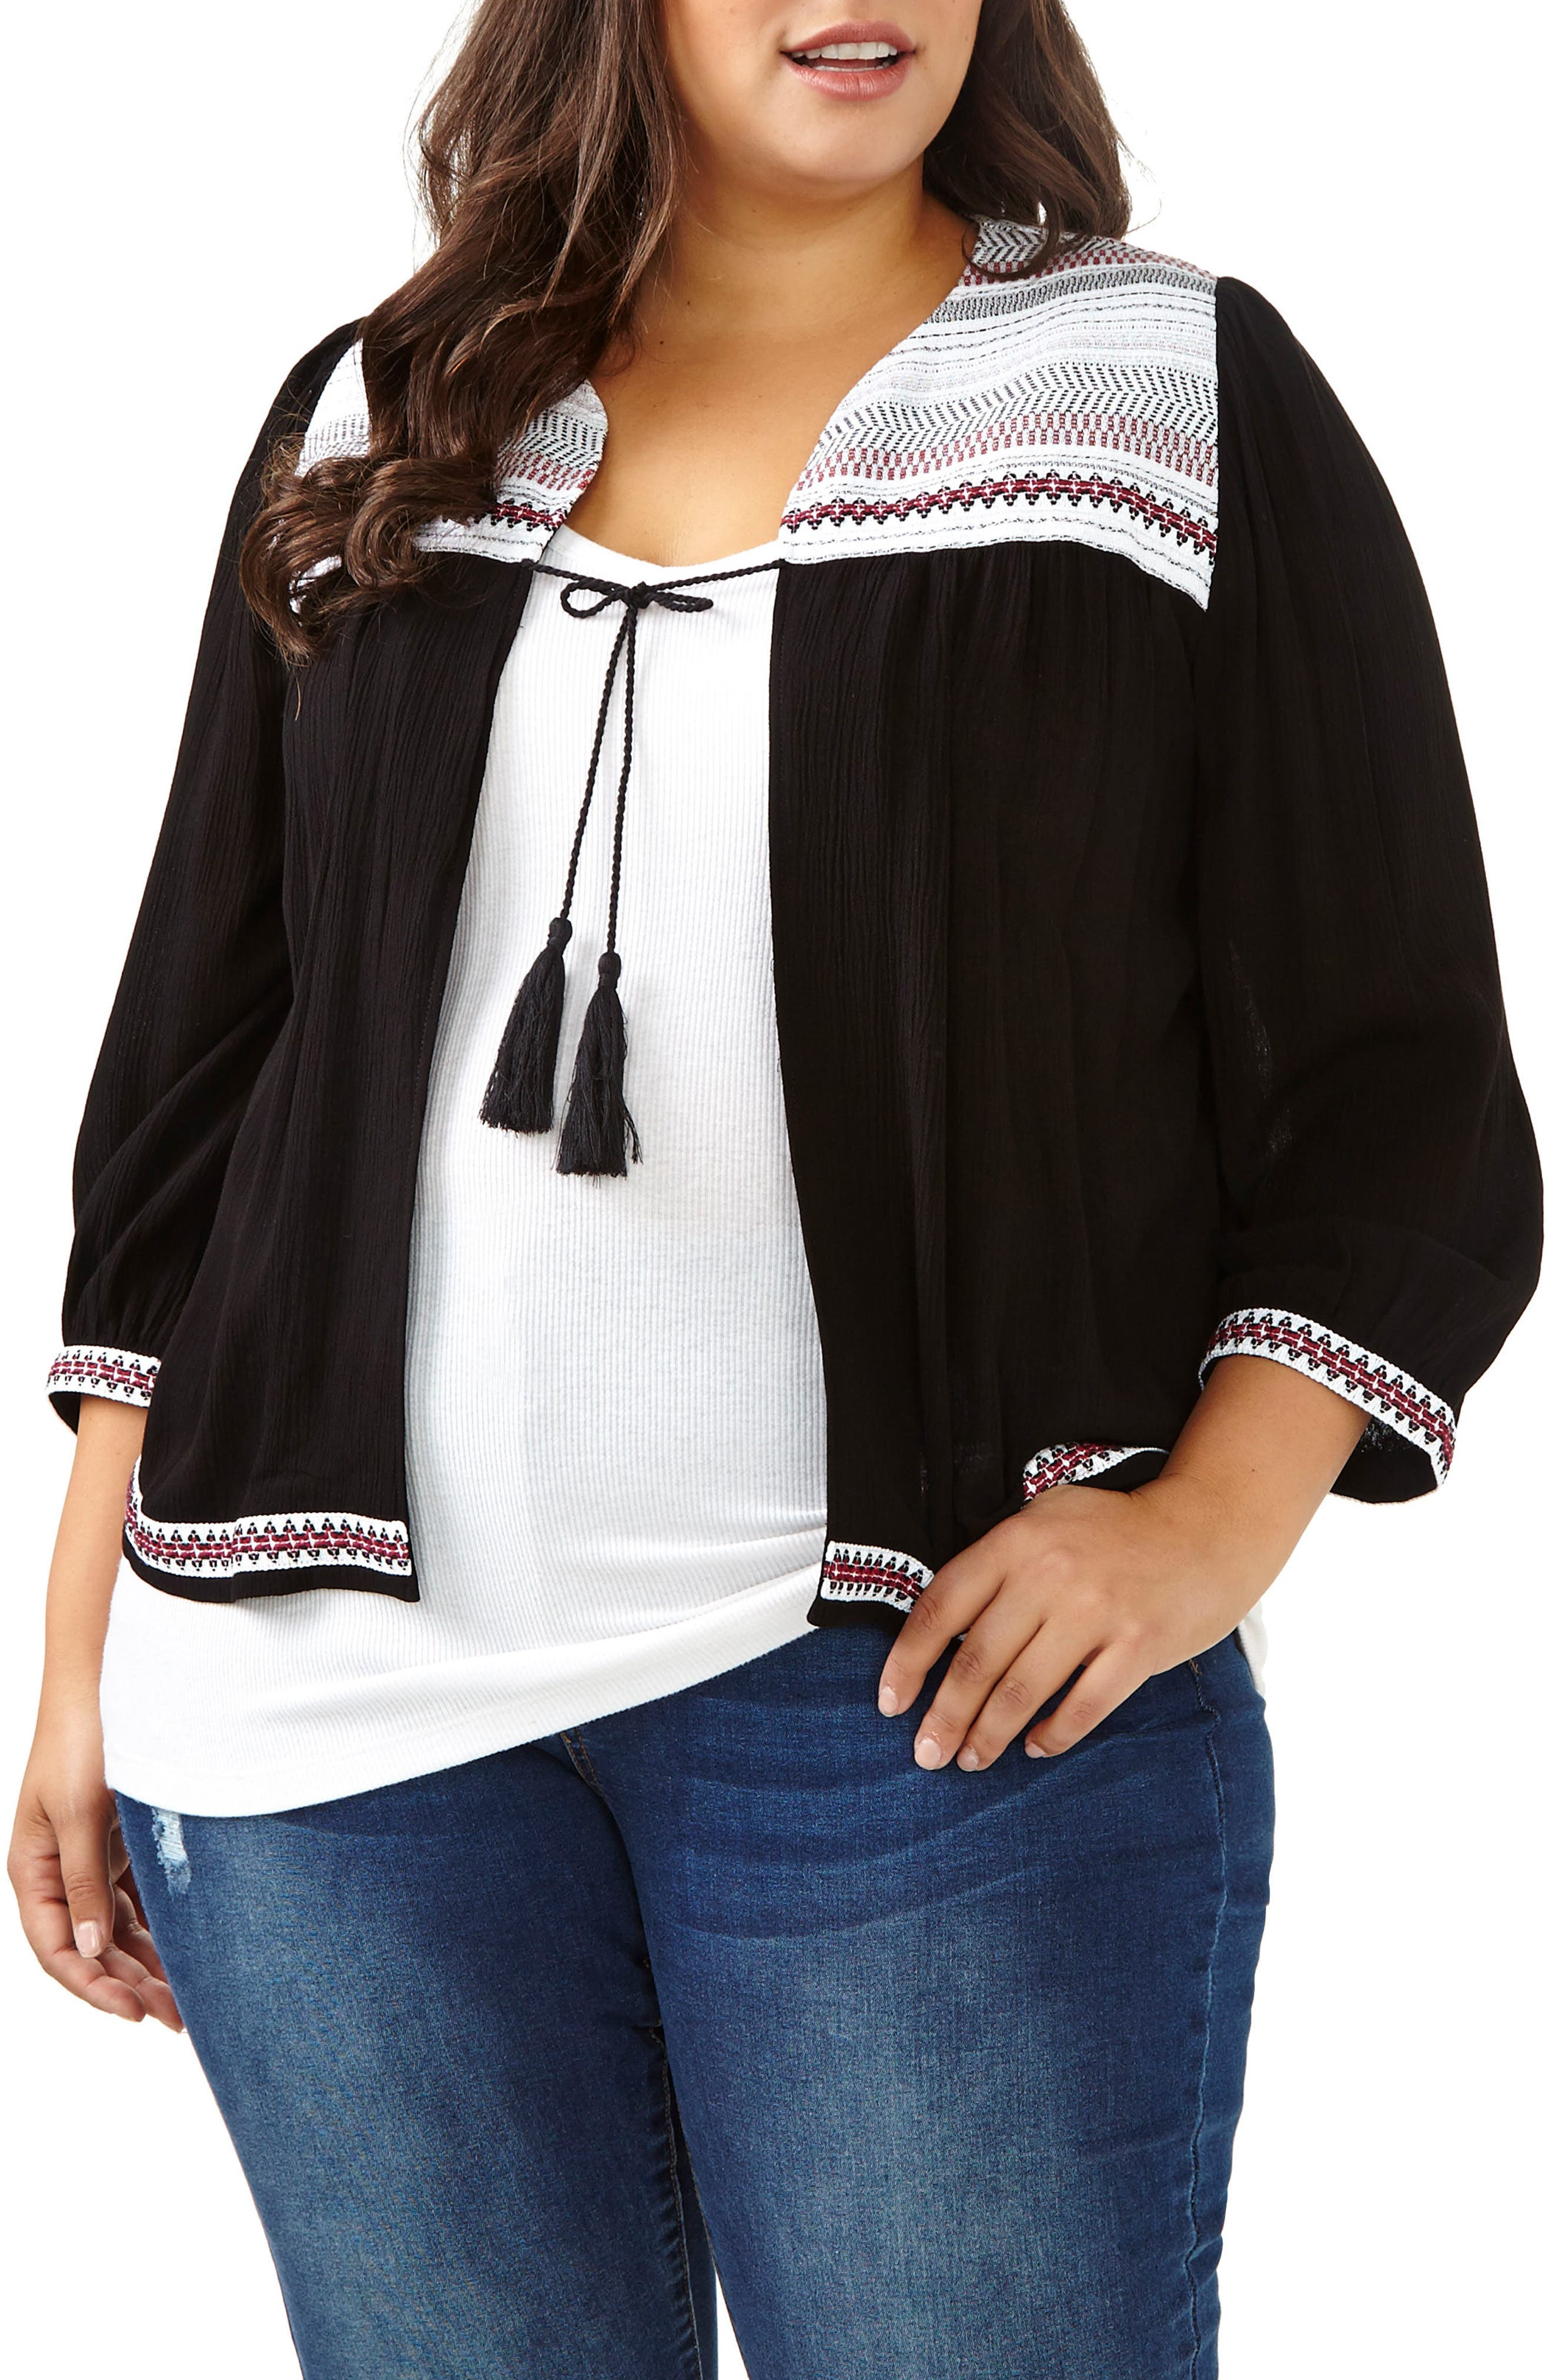 ADDITION ELLE LOVE AND LEGEND Tie Front Cardigan (Plus Size)